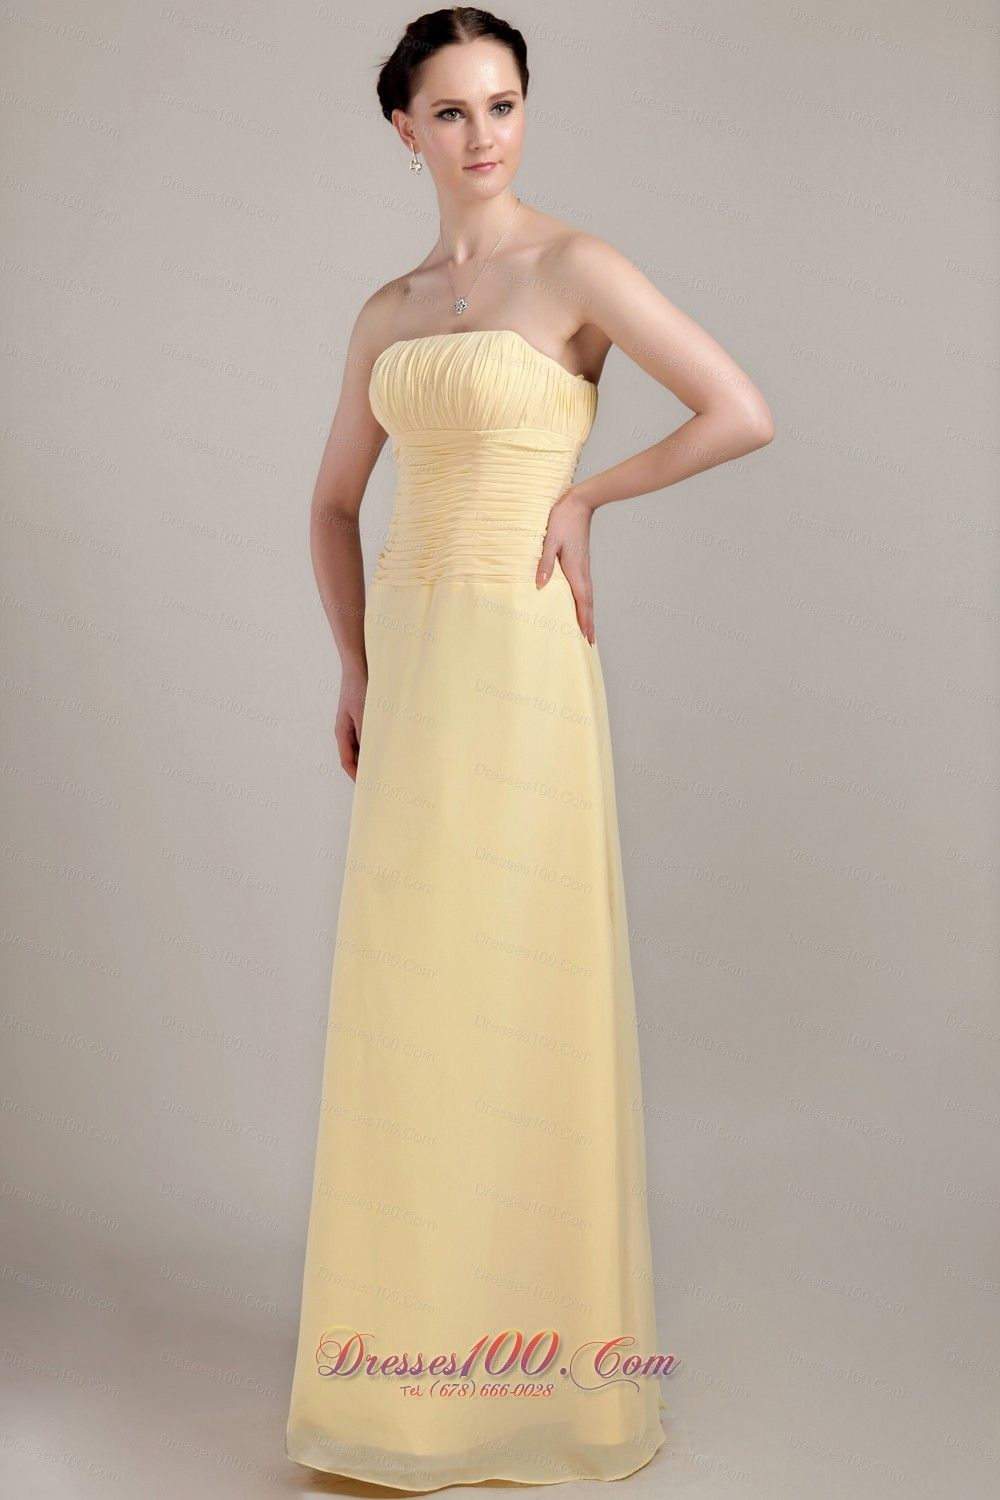 Cheap wedding dresses for military brides  kate middleton Prom Dress in B  ccar Buenos Aires Party Dresses